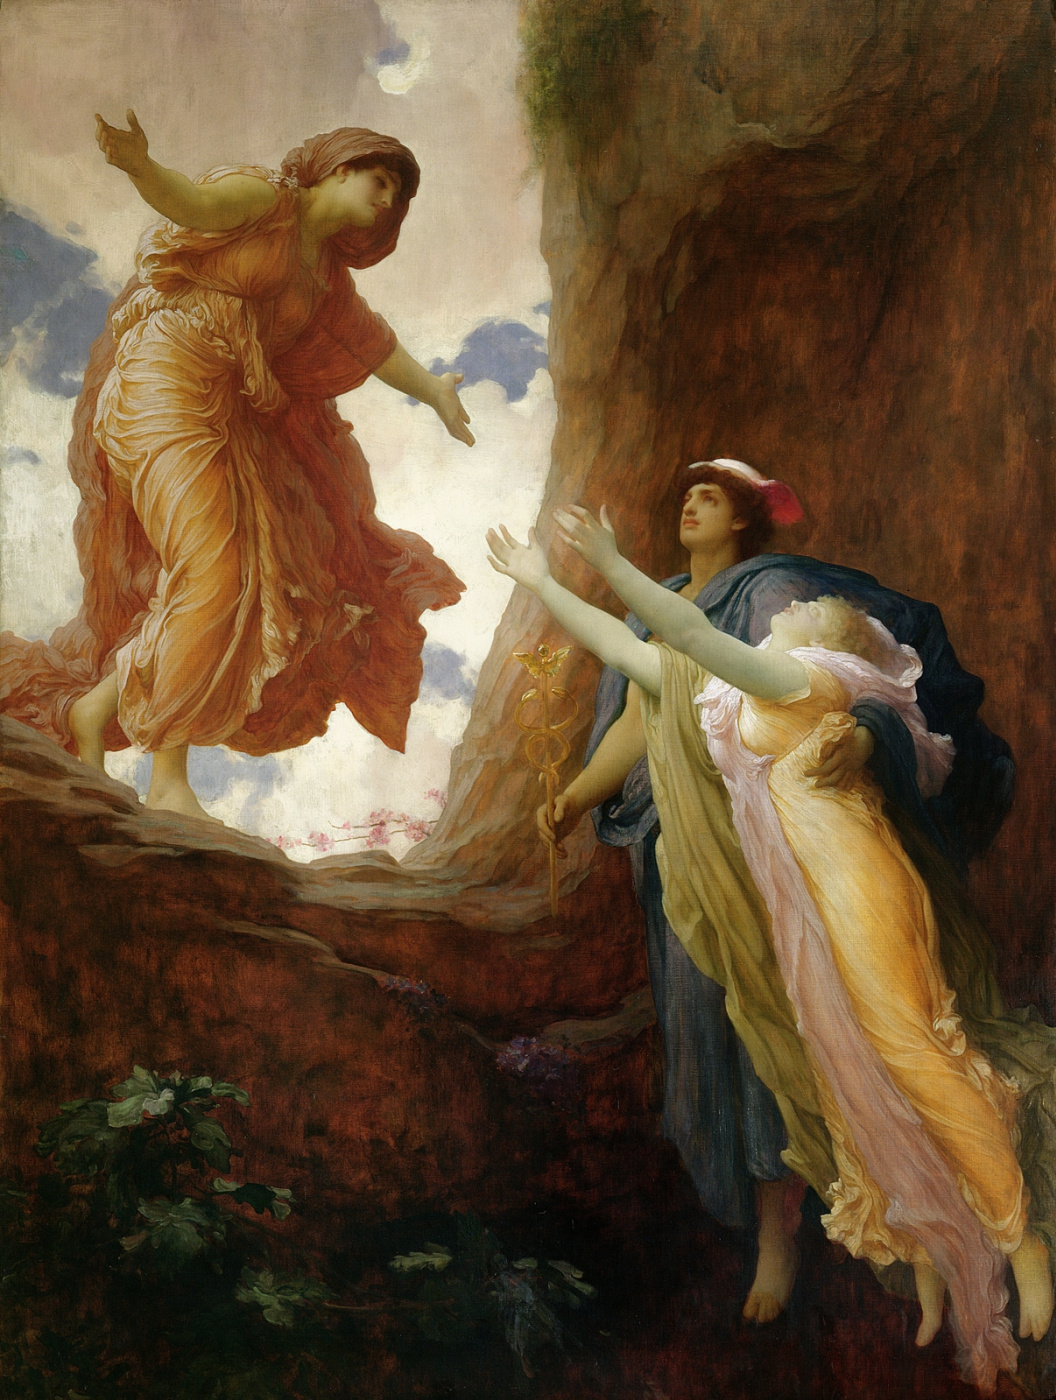 An image of Hermes returning Persephone to her mother, Demeter. By Frederic Leighton.